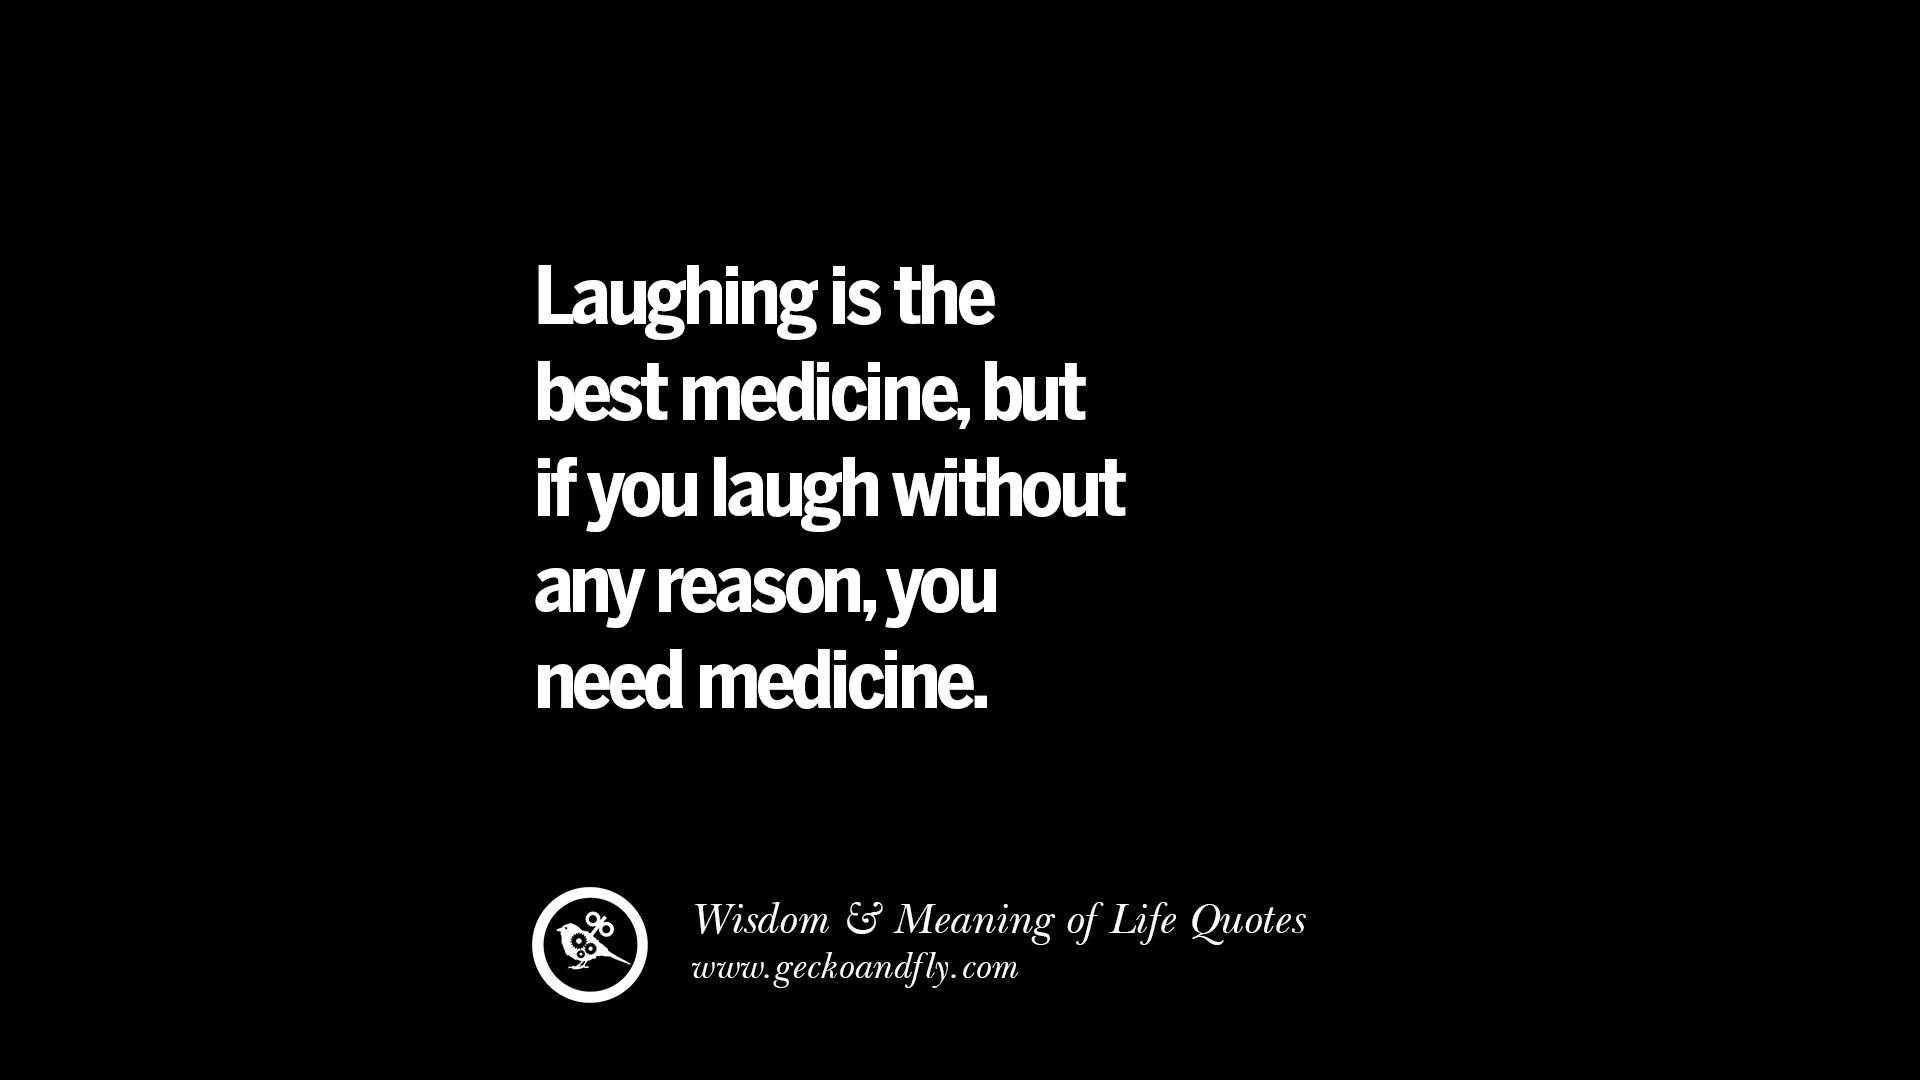 Funny Wise Quotes And Sayings About Life 24 Funny Eye Opening Quotes About Wisdom Truth And Meaning Of